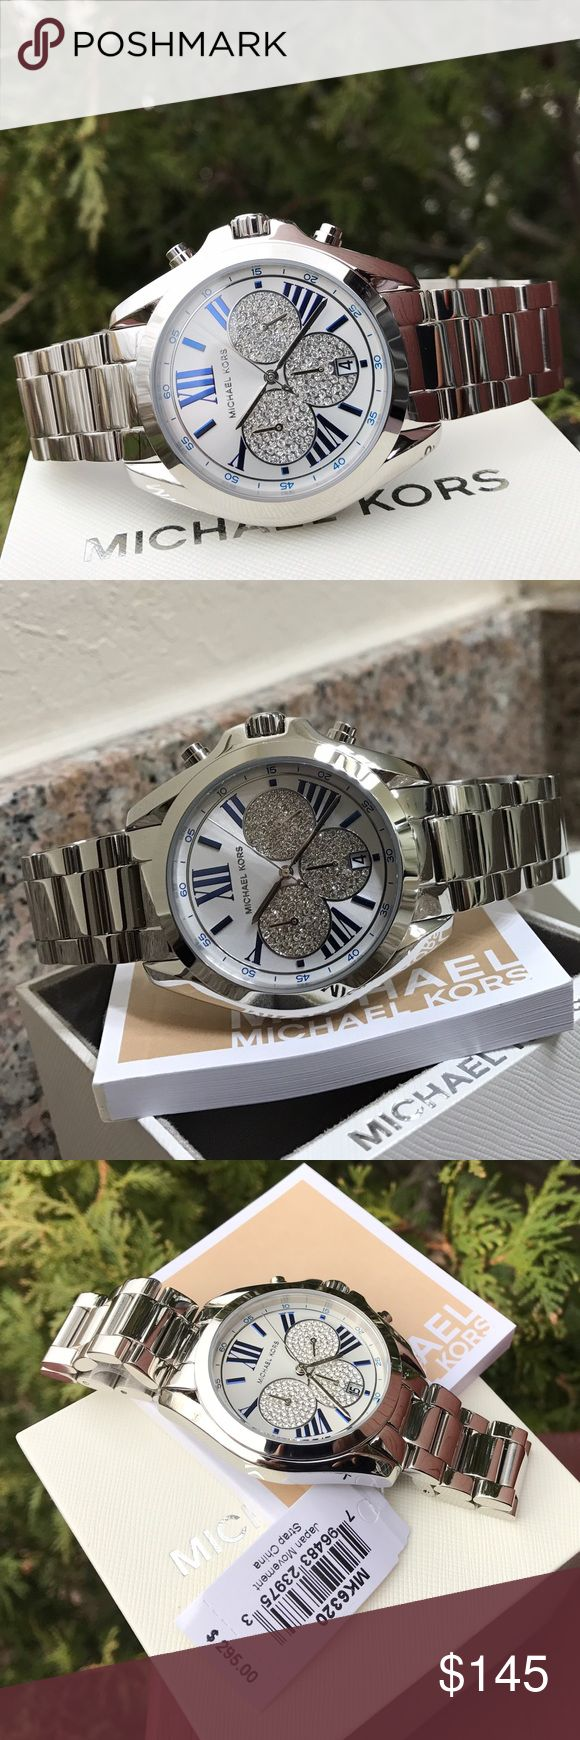 $295 Michael Kors Bradshaw Glitz Glam Watch MK6320 LAST 1! Guaranteed Authentic MK6320 / Model: Bradshaw / Retail: $295 / Silver stainless steel / New with Michael Kors watch box and owners booklet included / Chronograph glitz dial / 38mm case / 10 ATM / UPC: 796483239753 / No trades. Buy now or offer only / Shipped same business day Michael Kors Accessories Watches